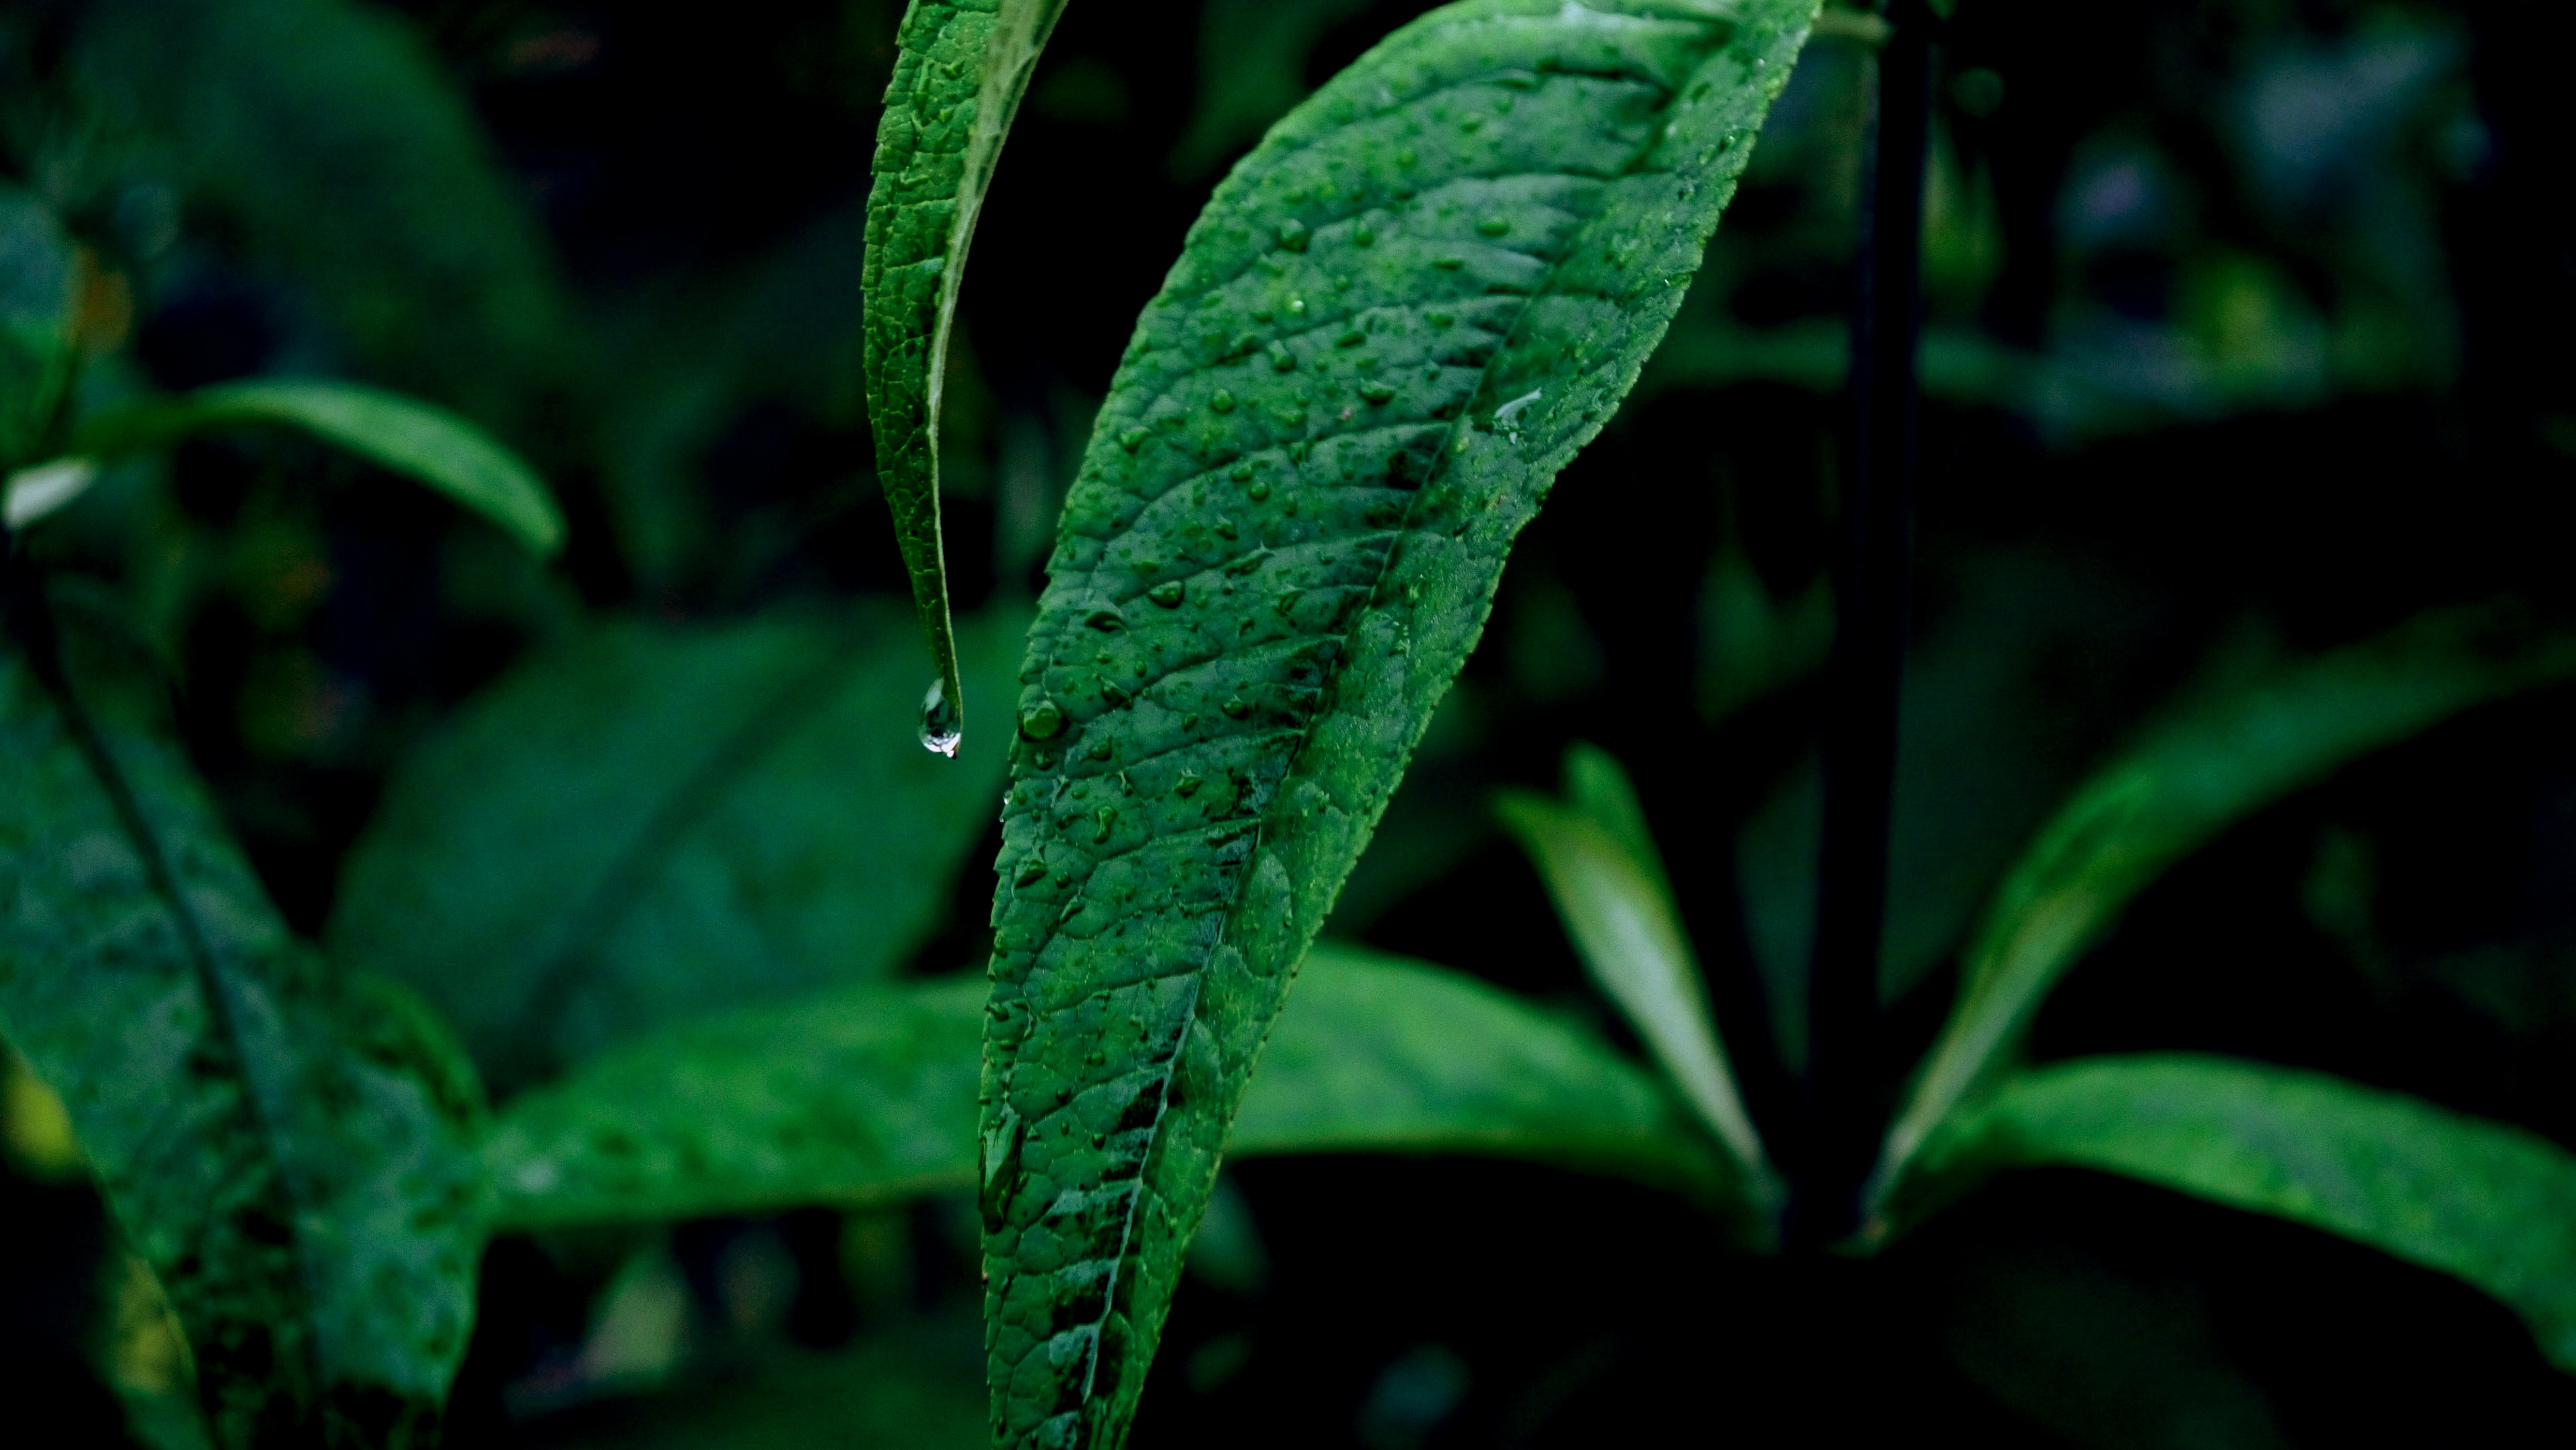 close up photography of green leaves